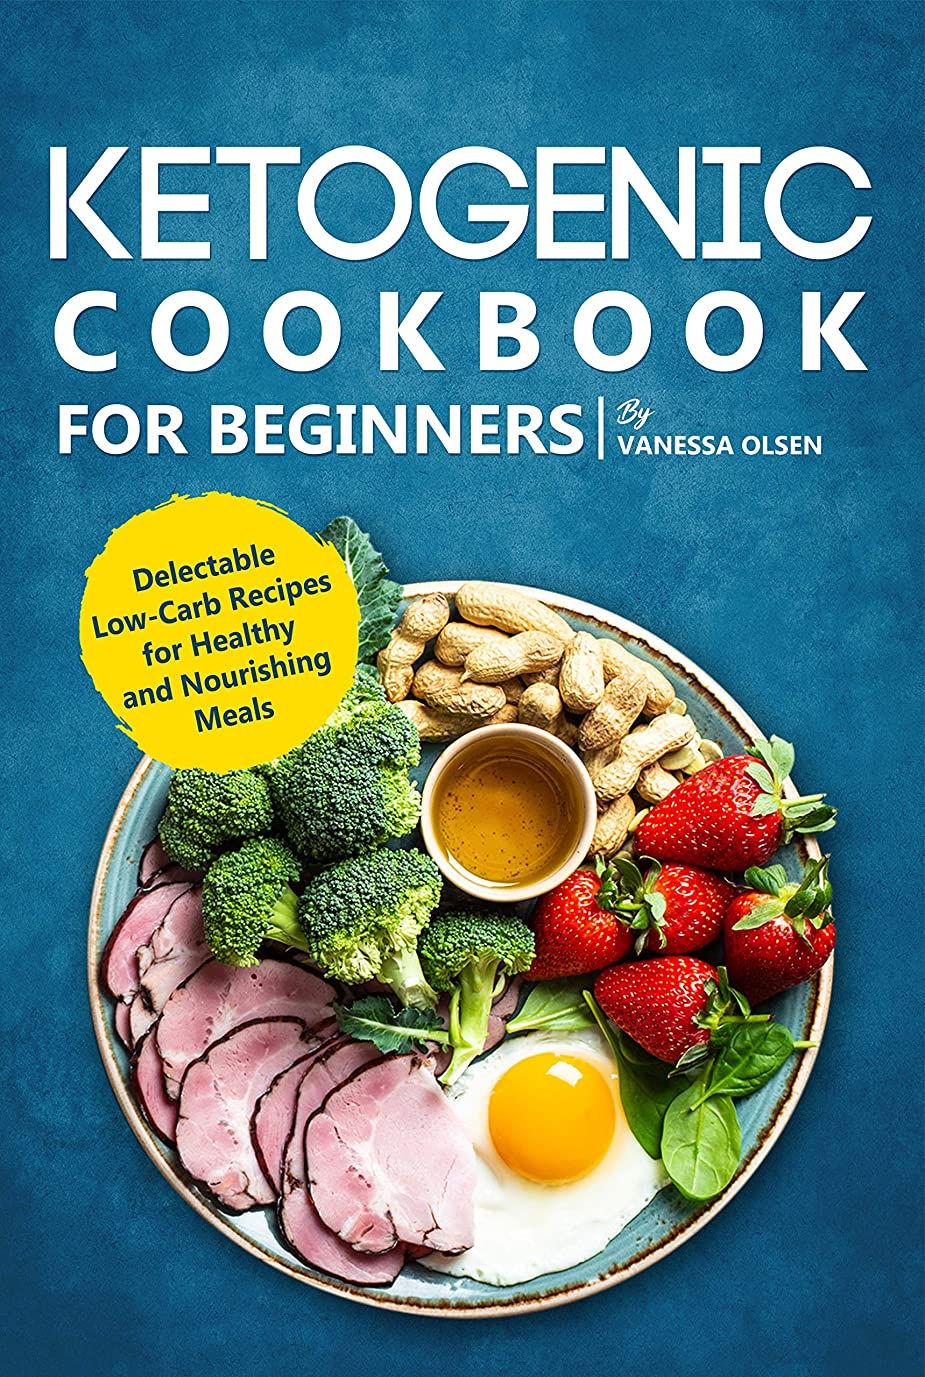 Ketogenic Cookbook for Beginners: Delectable Low-Carb Recipes for Healthy and Nourishing Meals (English Edition)